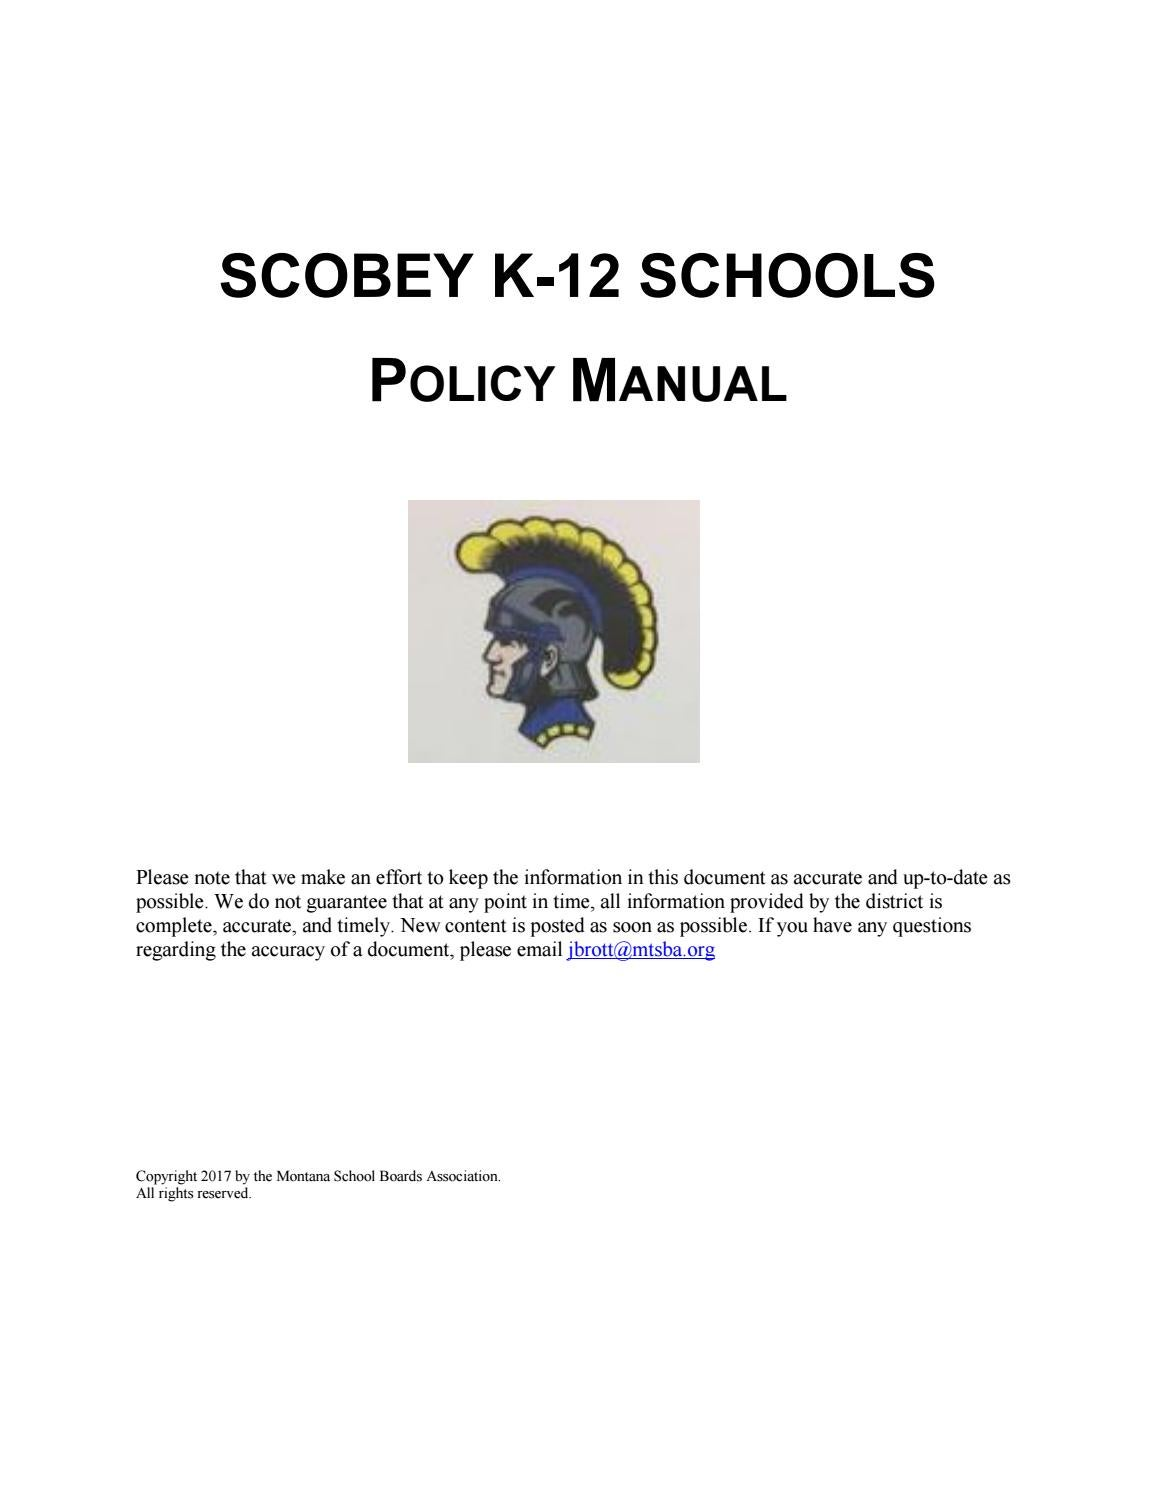 Scobey K12 Schools Policy Manual By Montana School Boards Example State Diagram Courseoffering Association Issuu